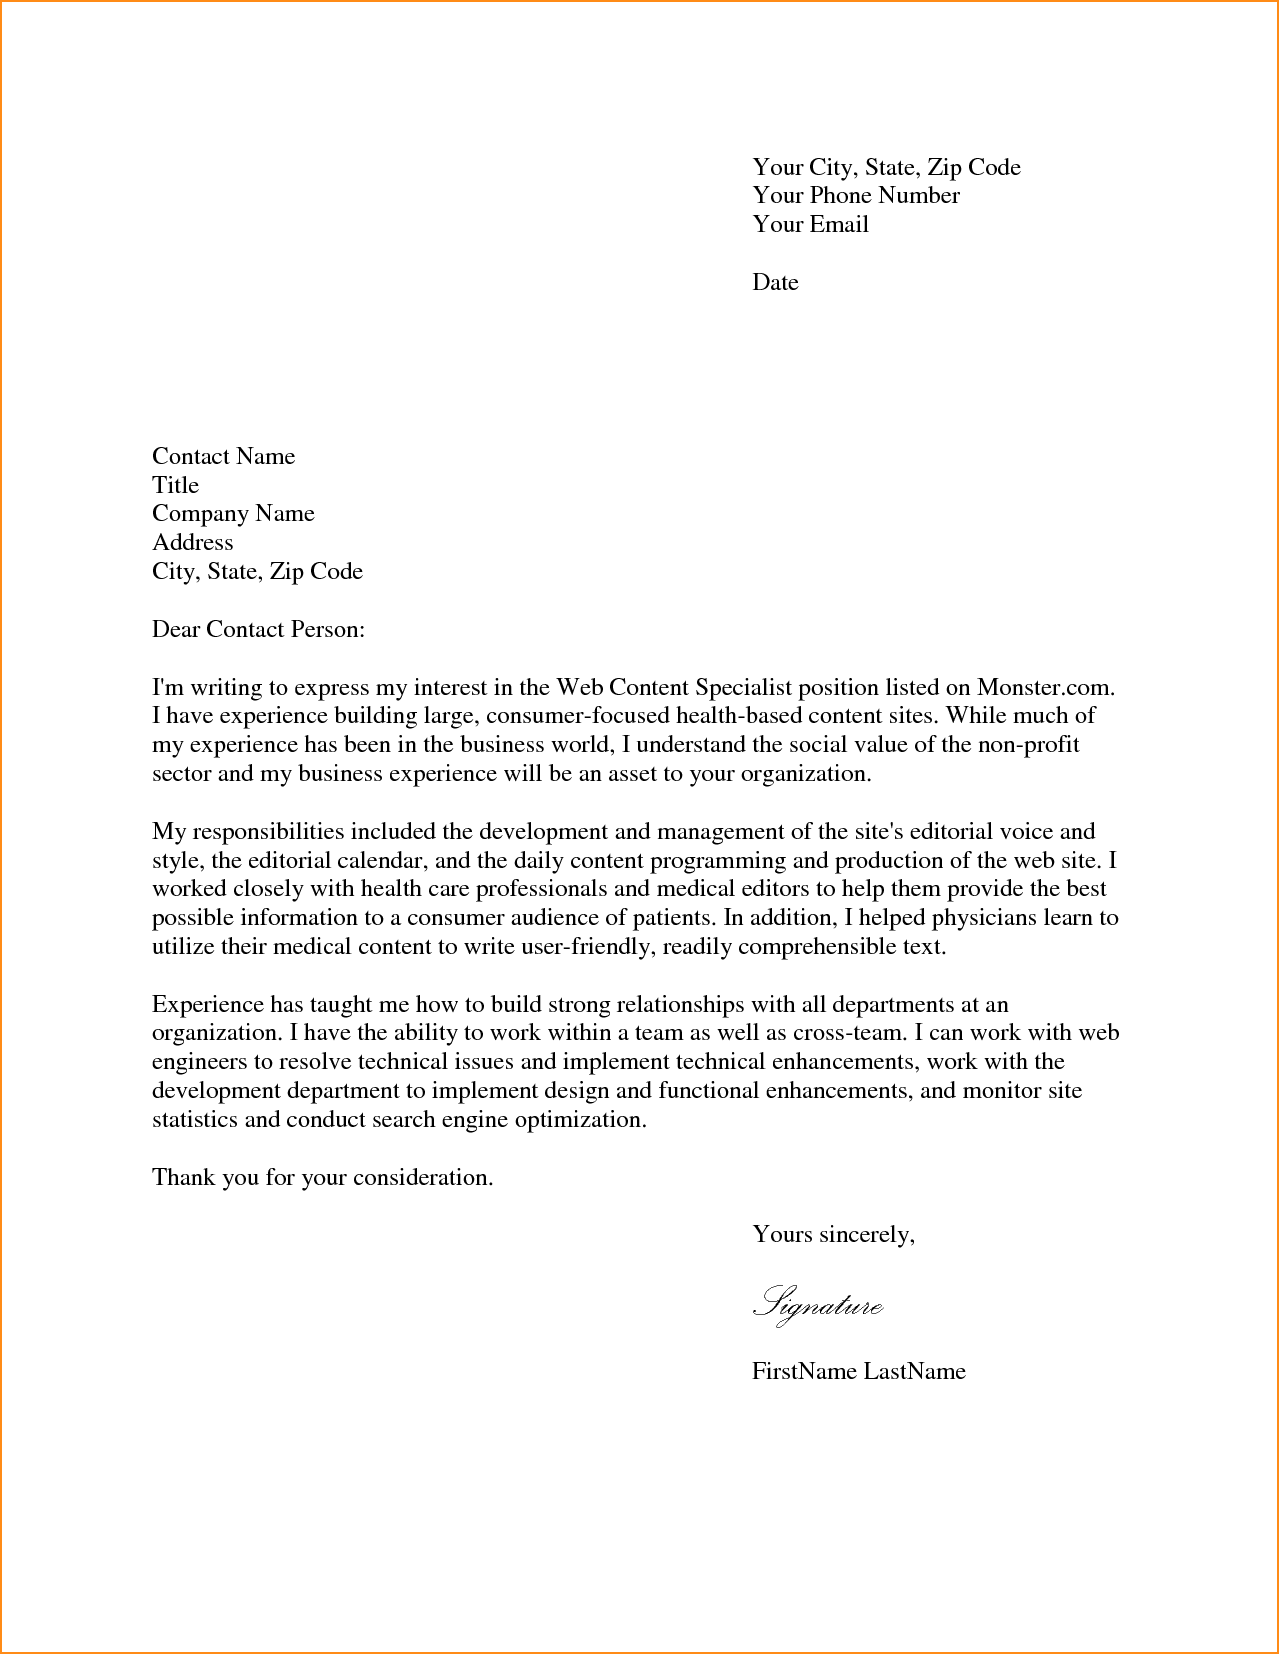 Cover Letter Sample For Job Application Basic Appication The South